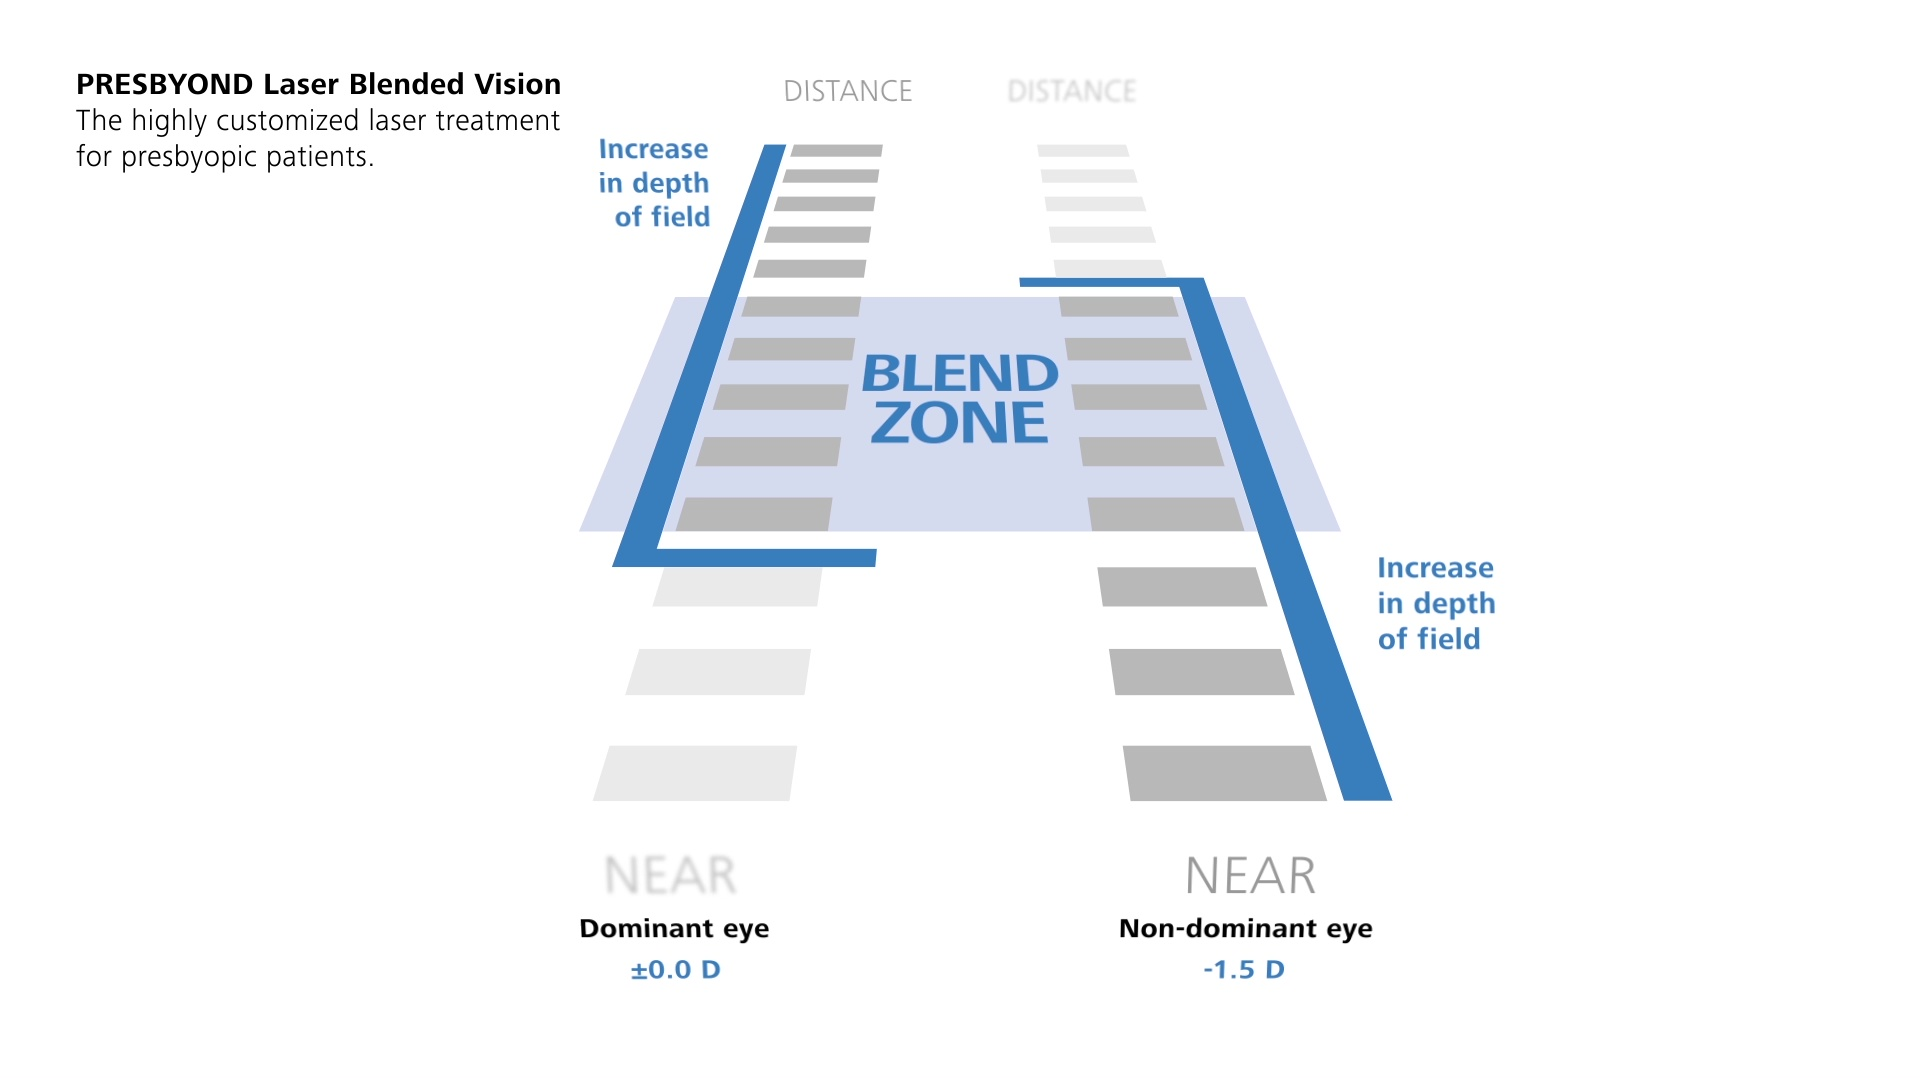 Discover the benefits of the unique, customized PRESBYOND Laser Blended  Vision